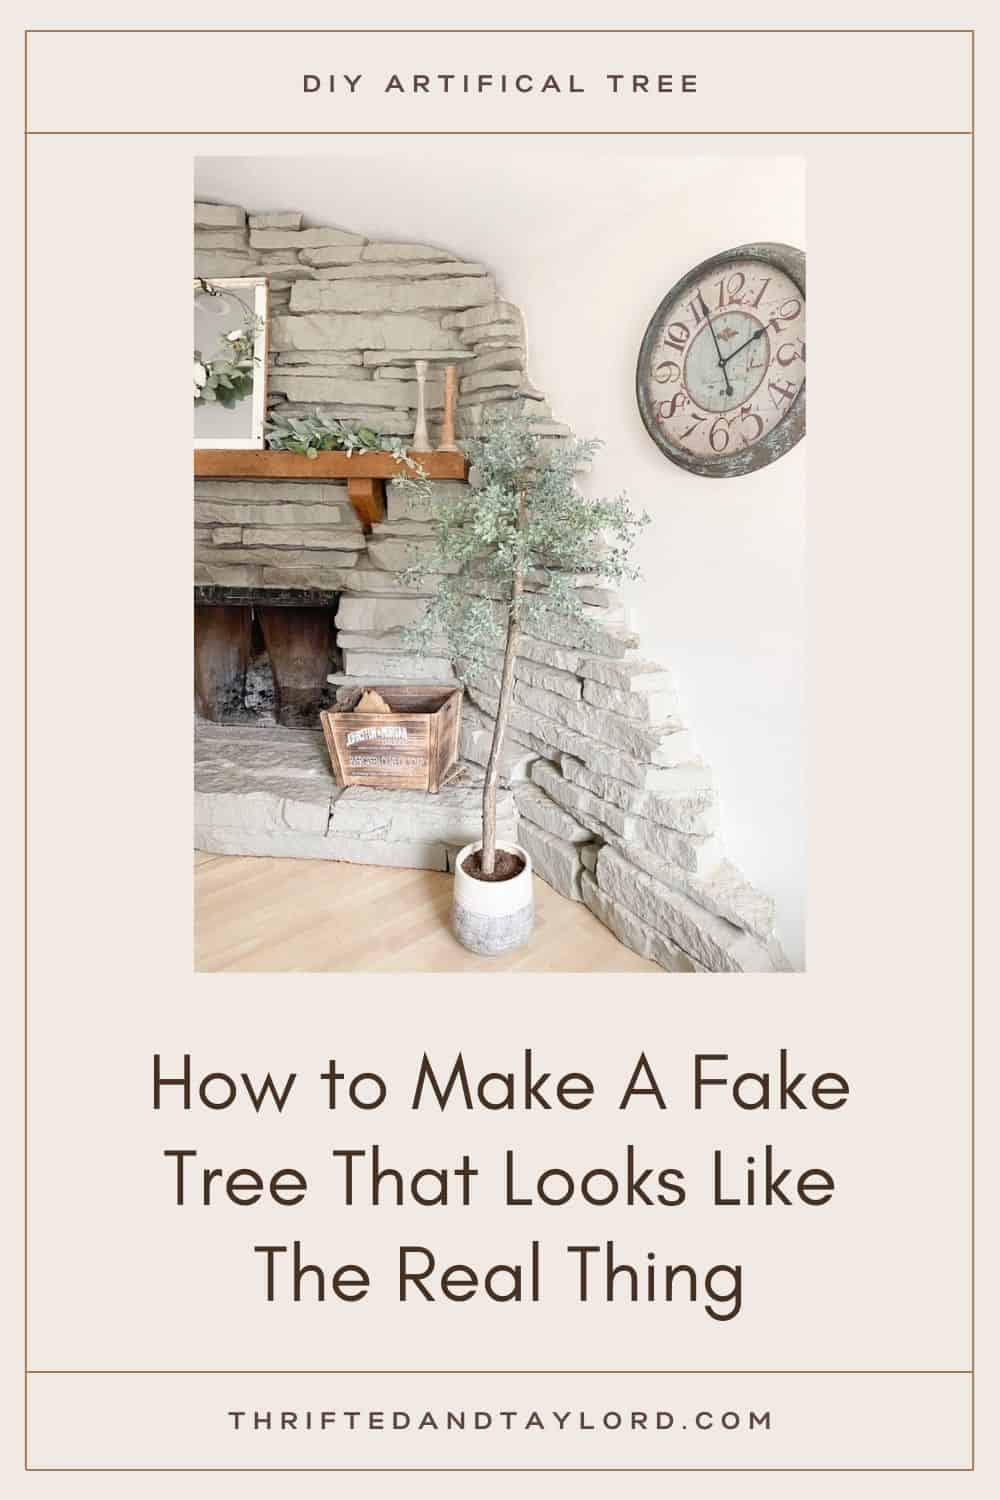 How to Make A Fake Tree That Looks Like It's Real